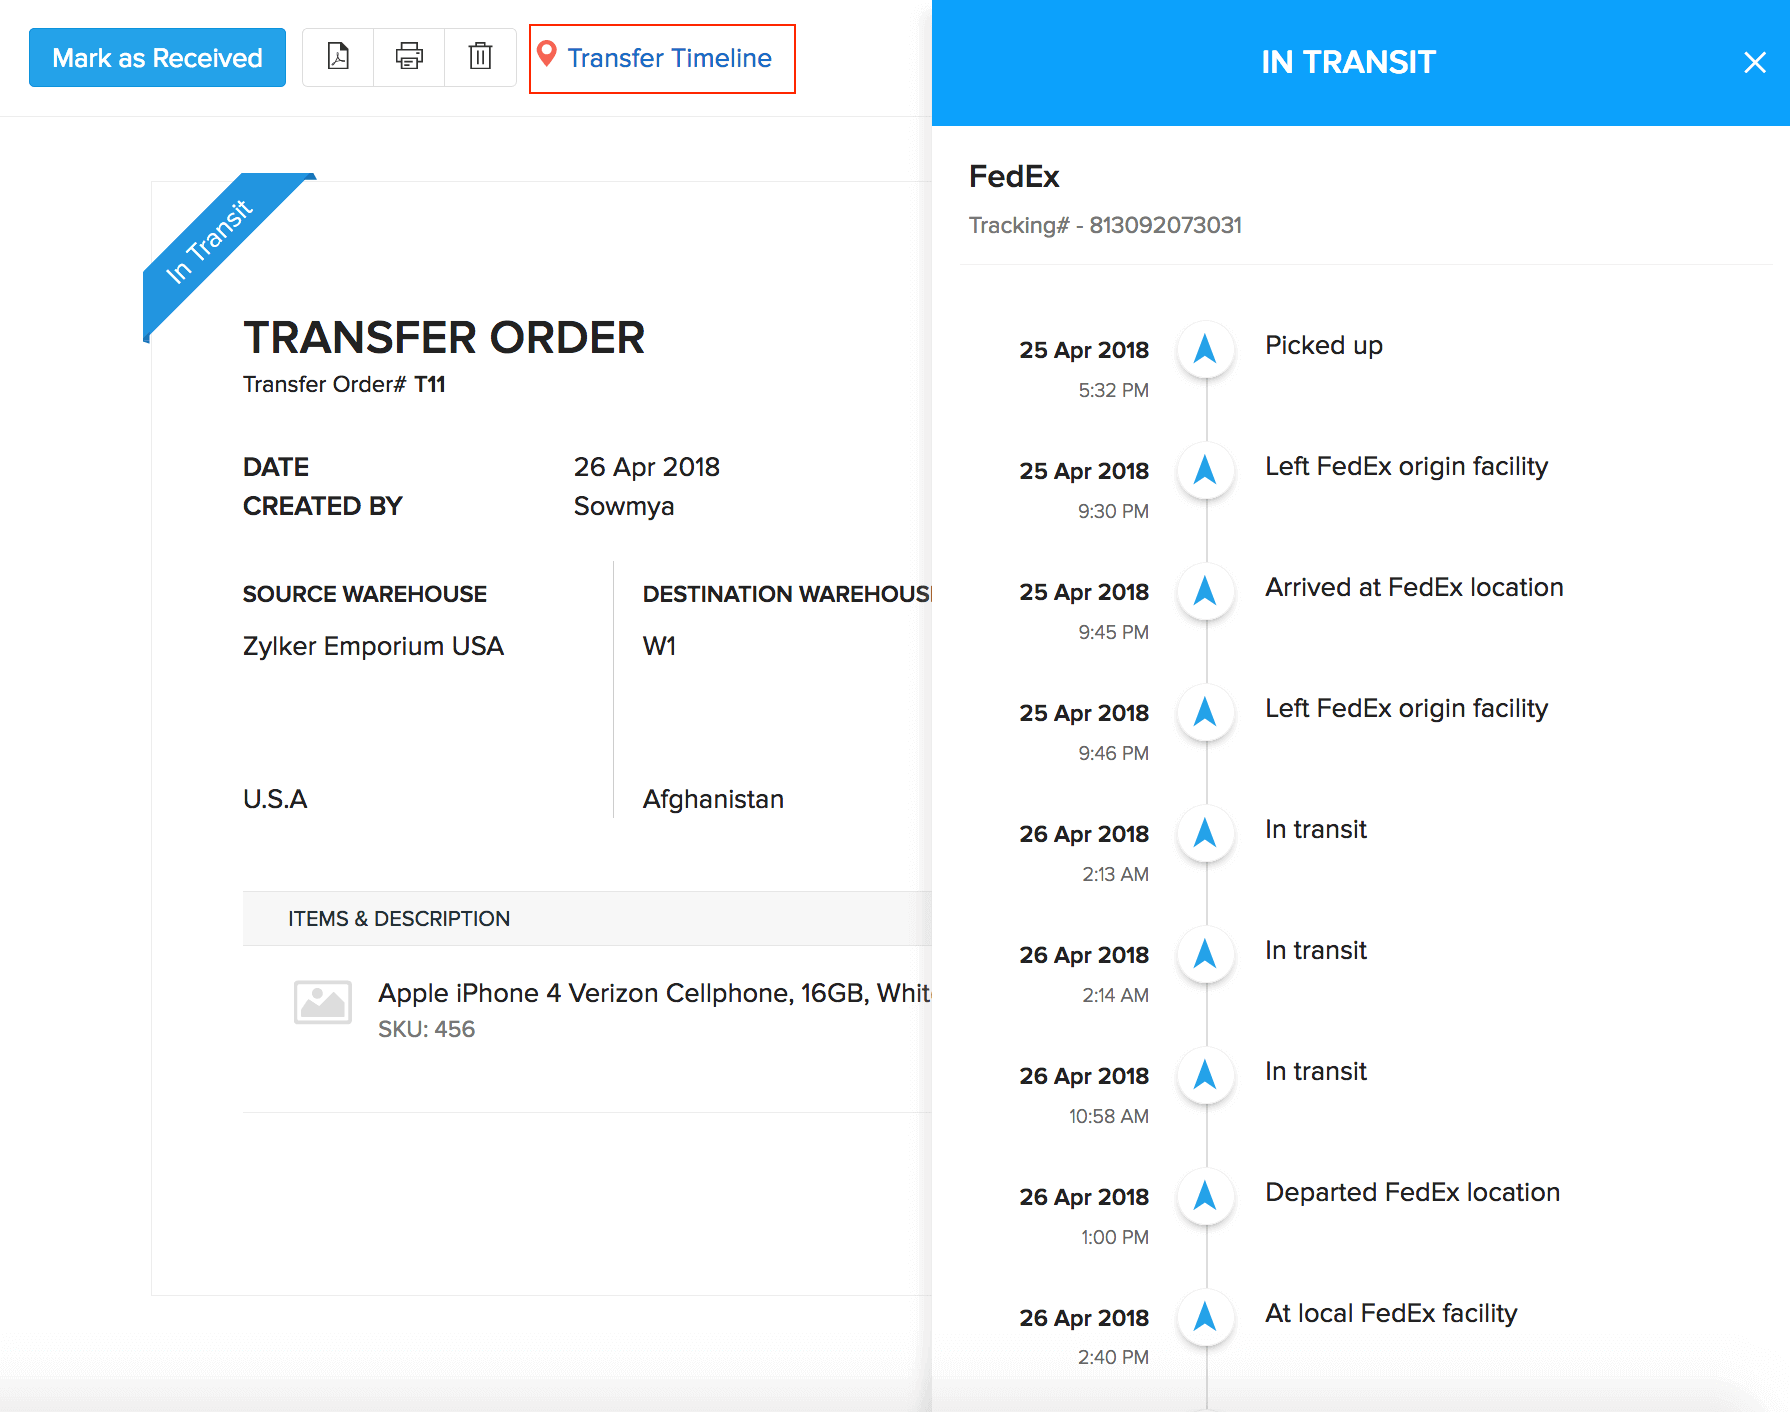 A slider tab populating real time transfer status